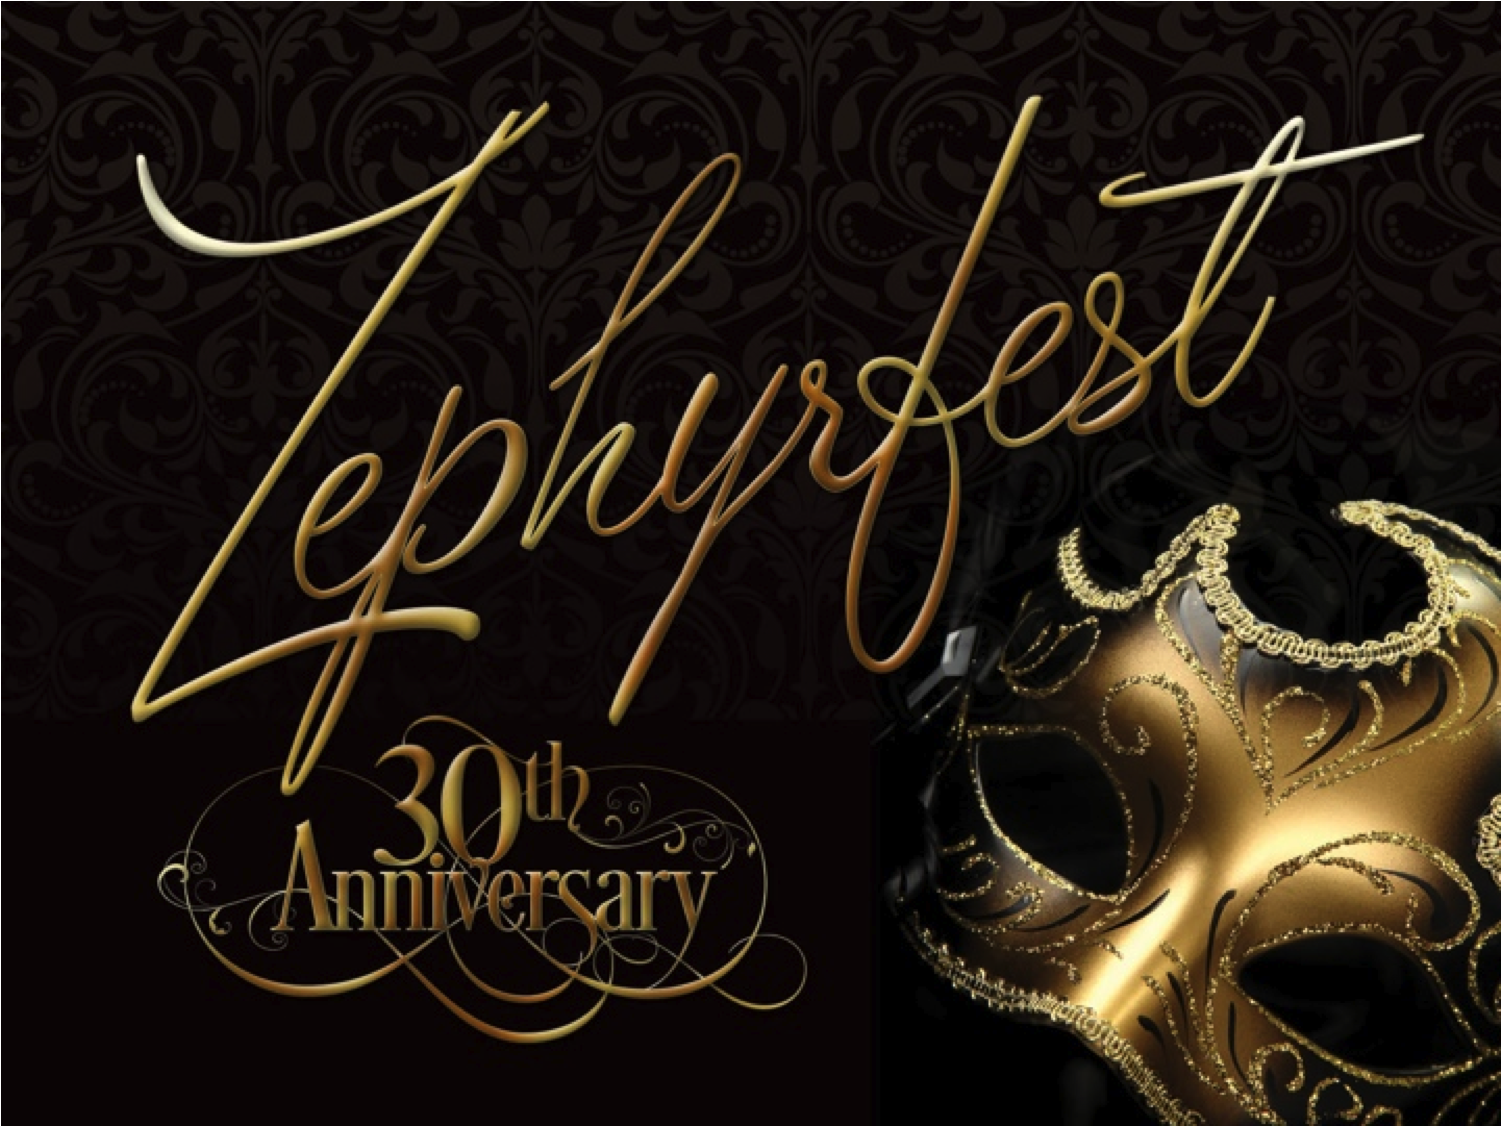 30th annual Zephyrfest